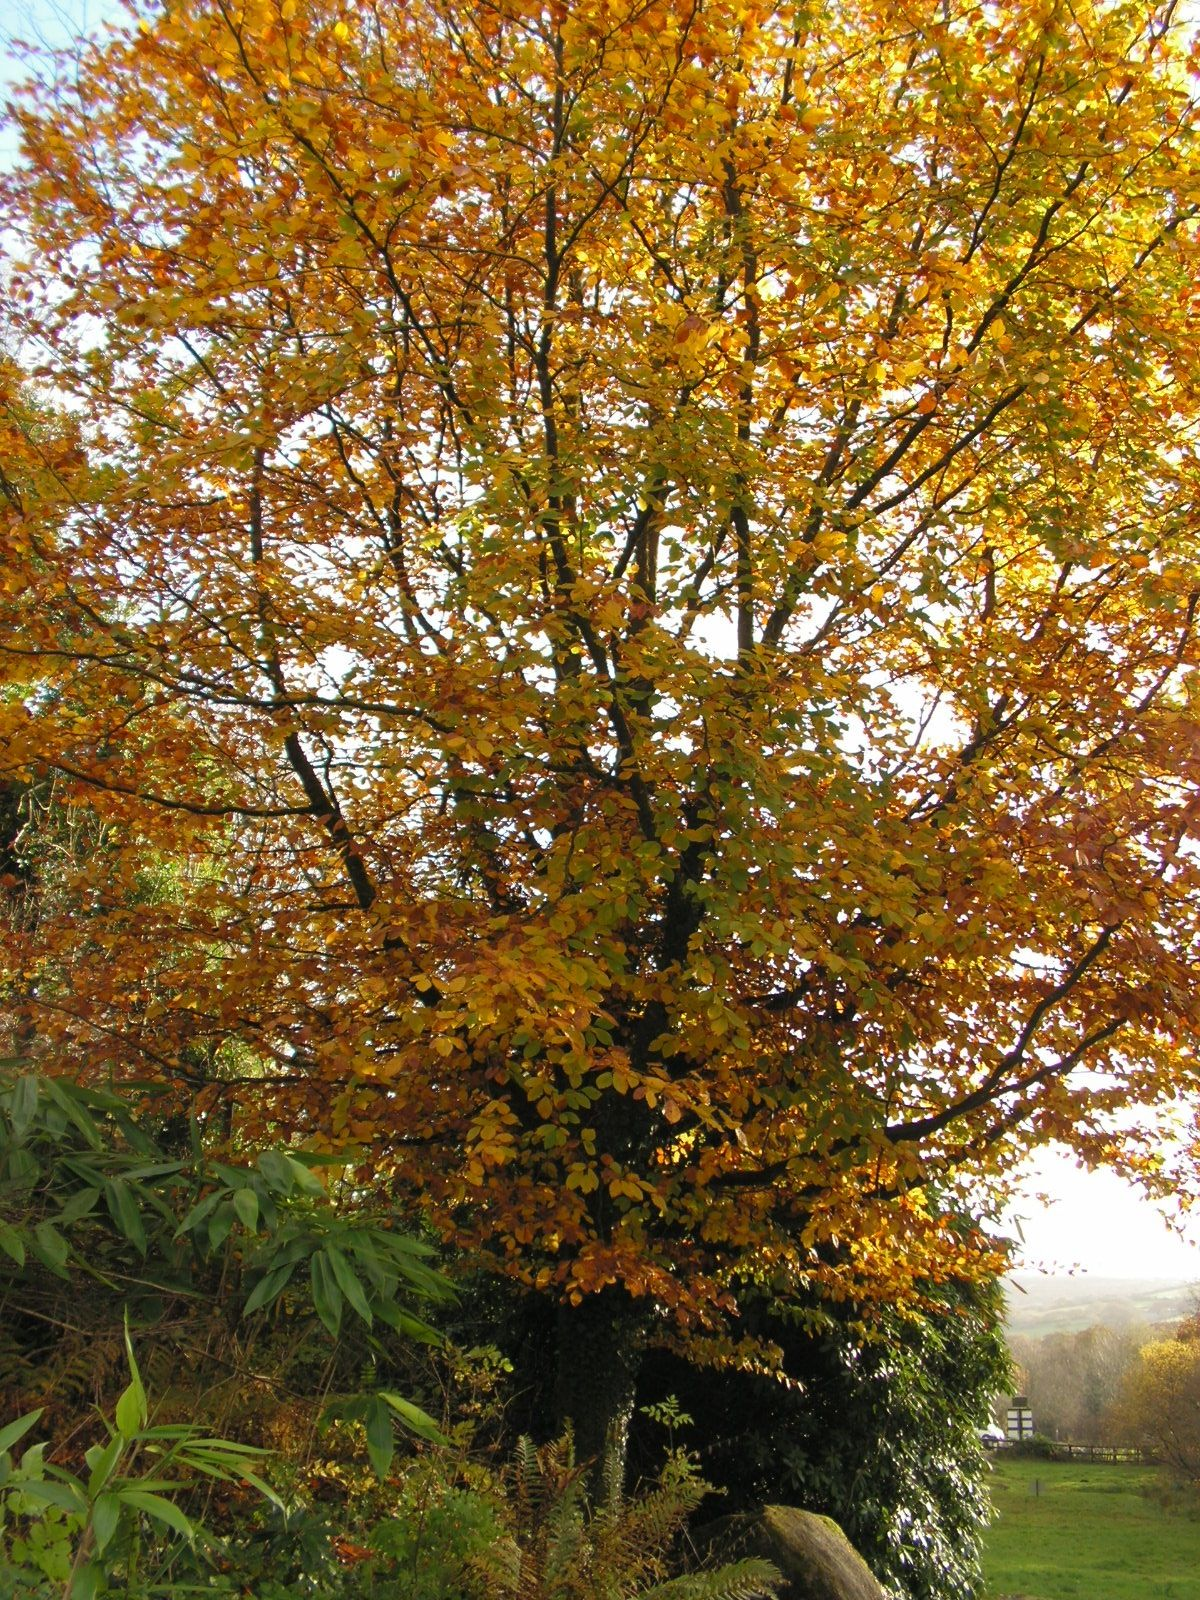 Golden Tree in Autumn, Dartmoor.